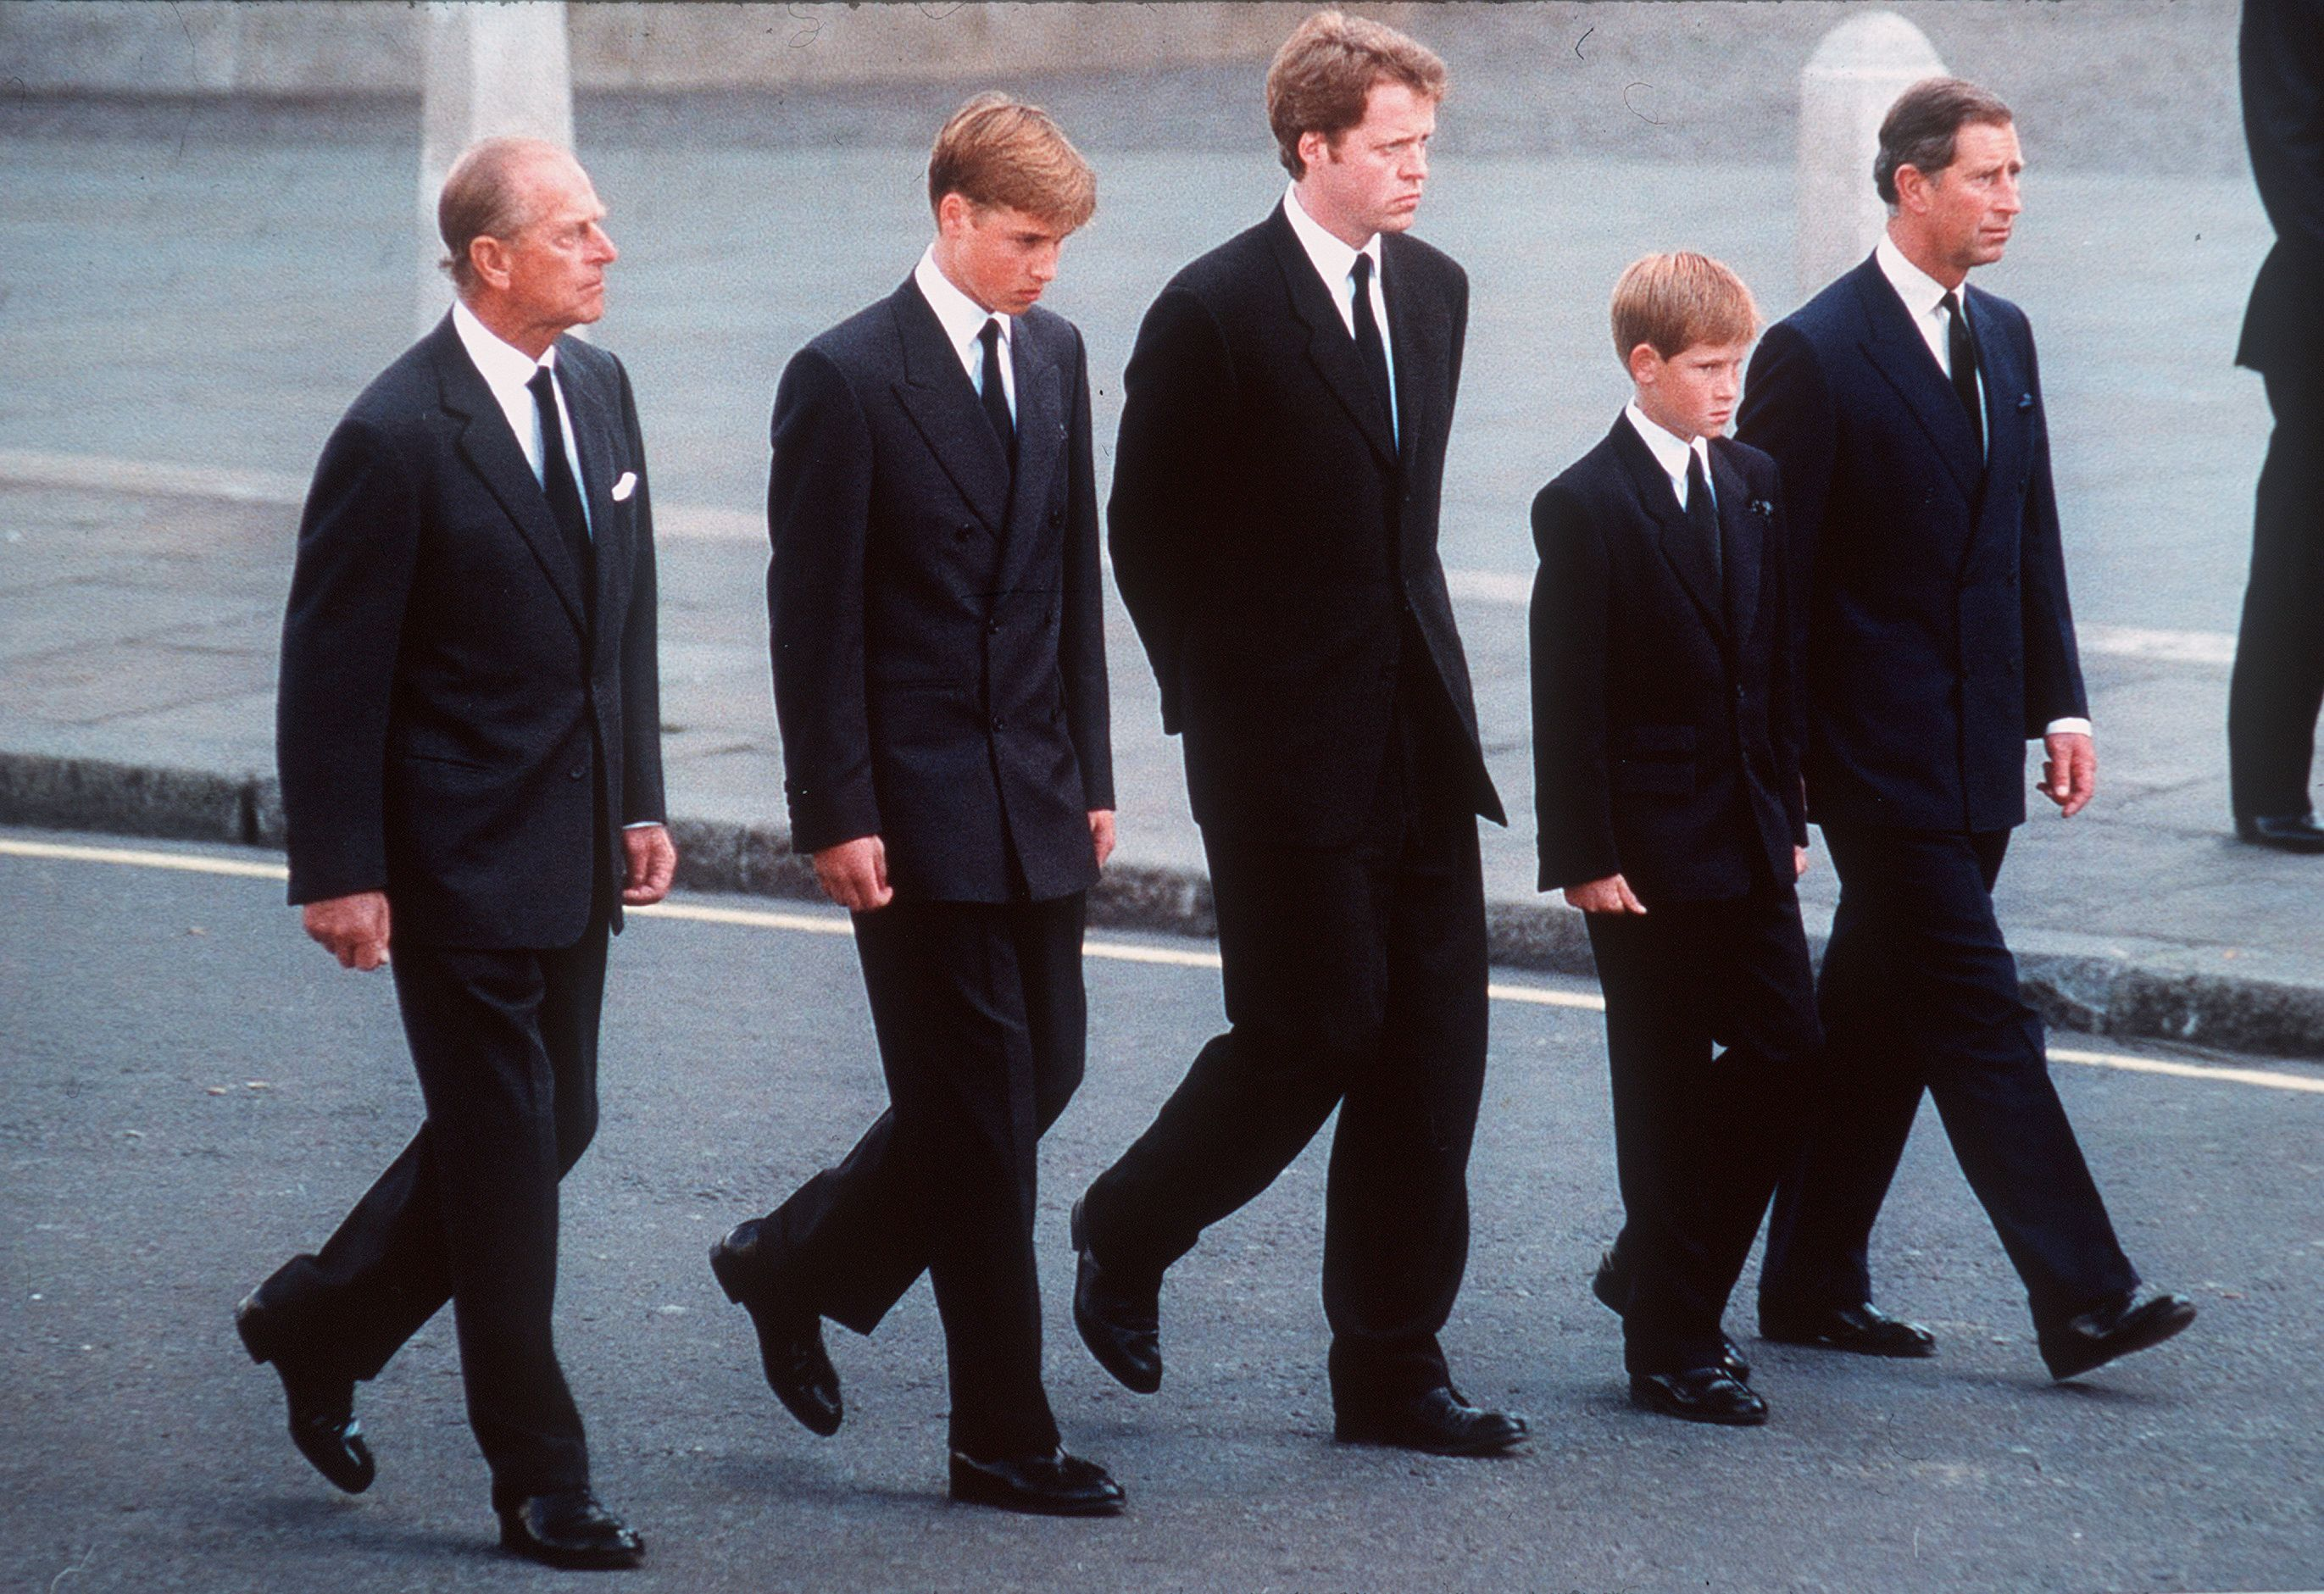 Late Prince Philip, Prince William, Earl Spencer, Prince Harry and Prince Charles, followed the coffin of late Princess Diana, in London, England on September 6, 1997   Photo: Getty Images